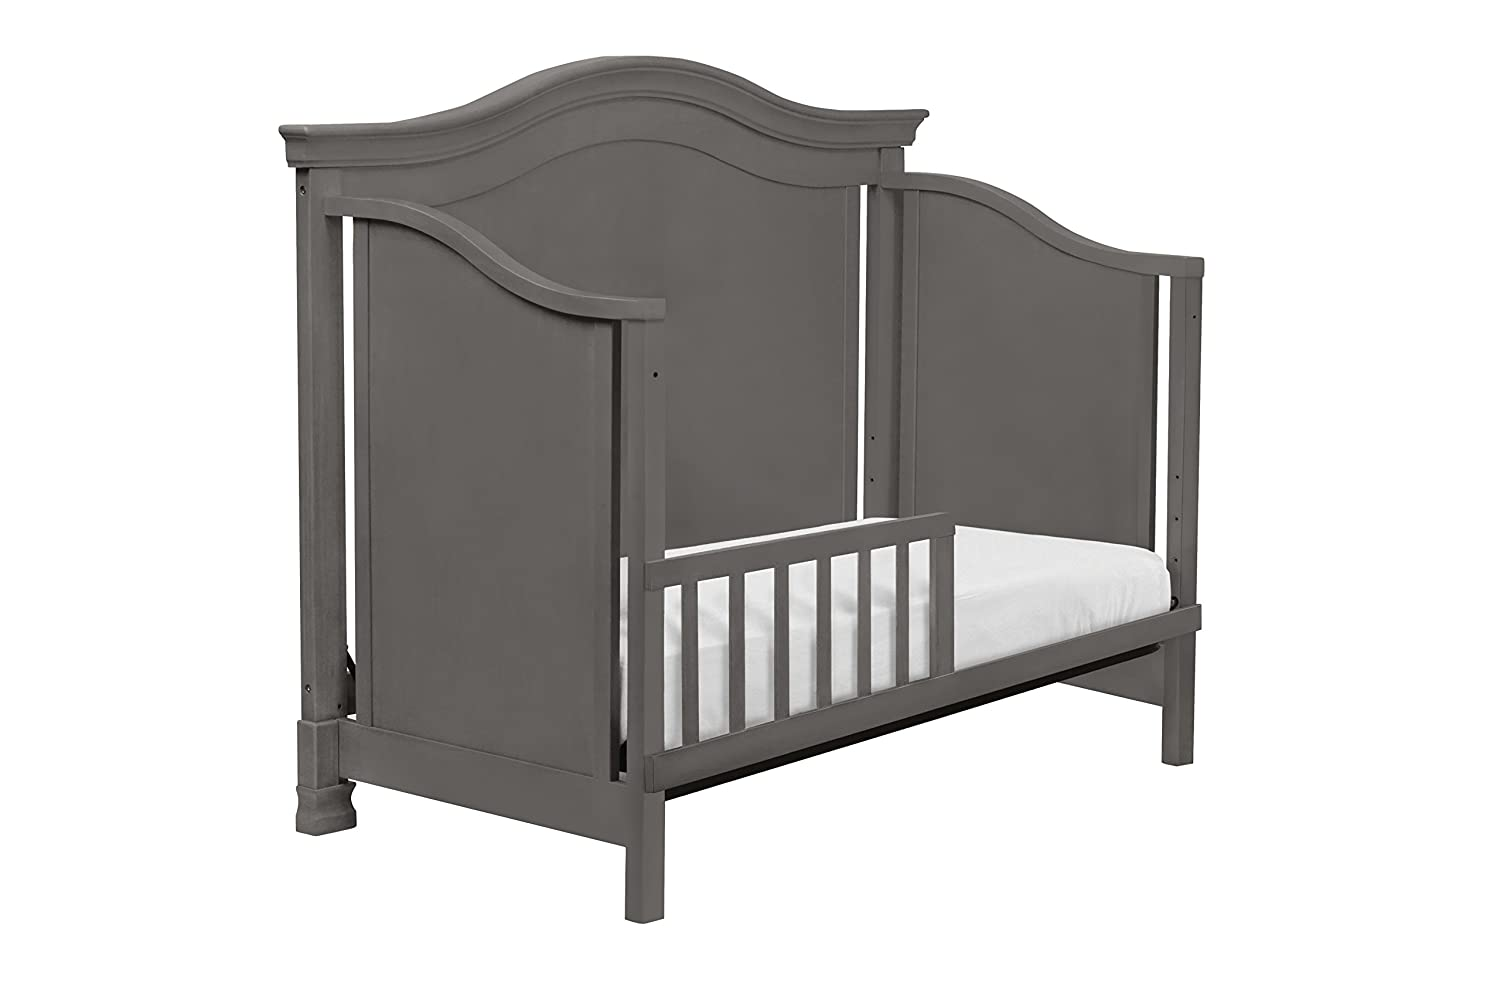 Kids bed side view - Kids Bed Side View 36